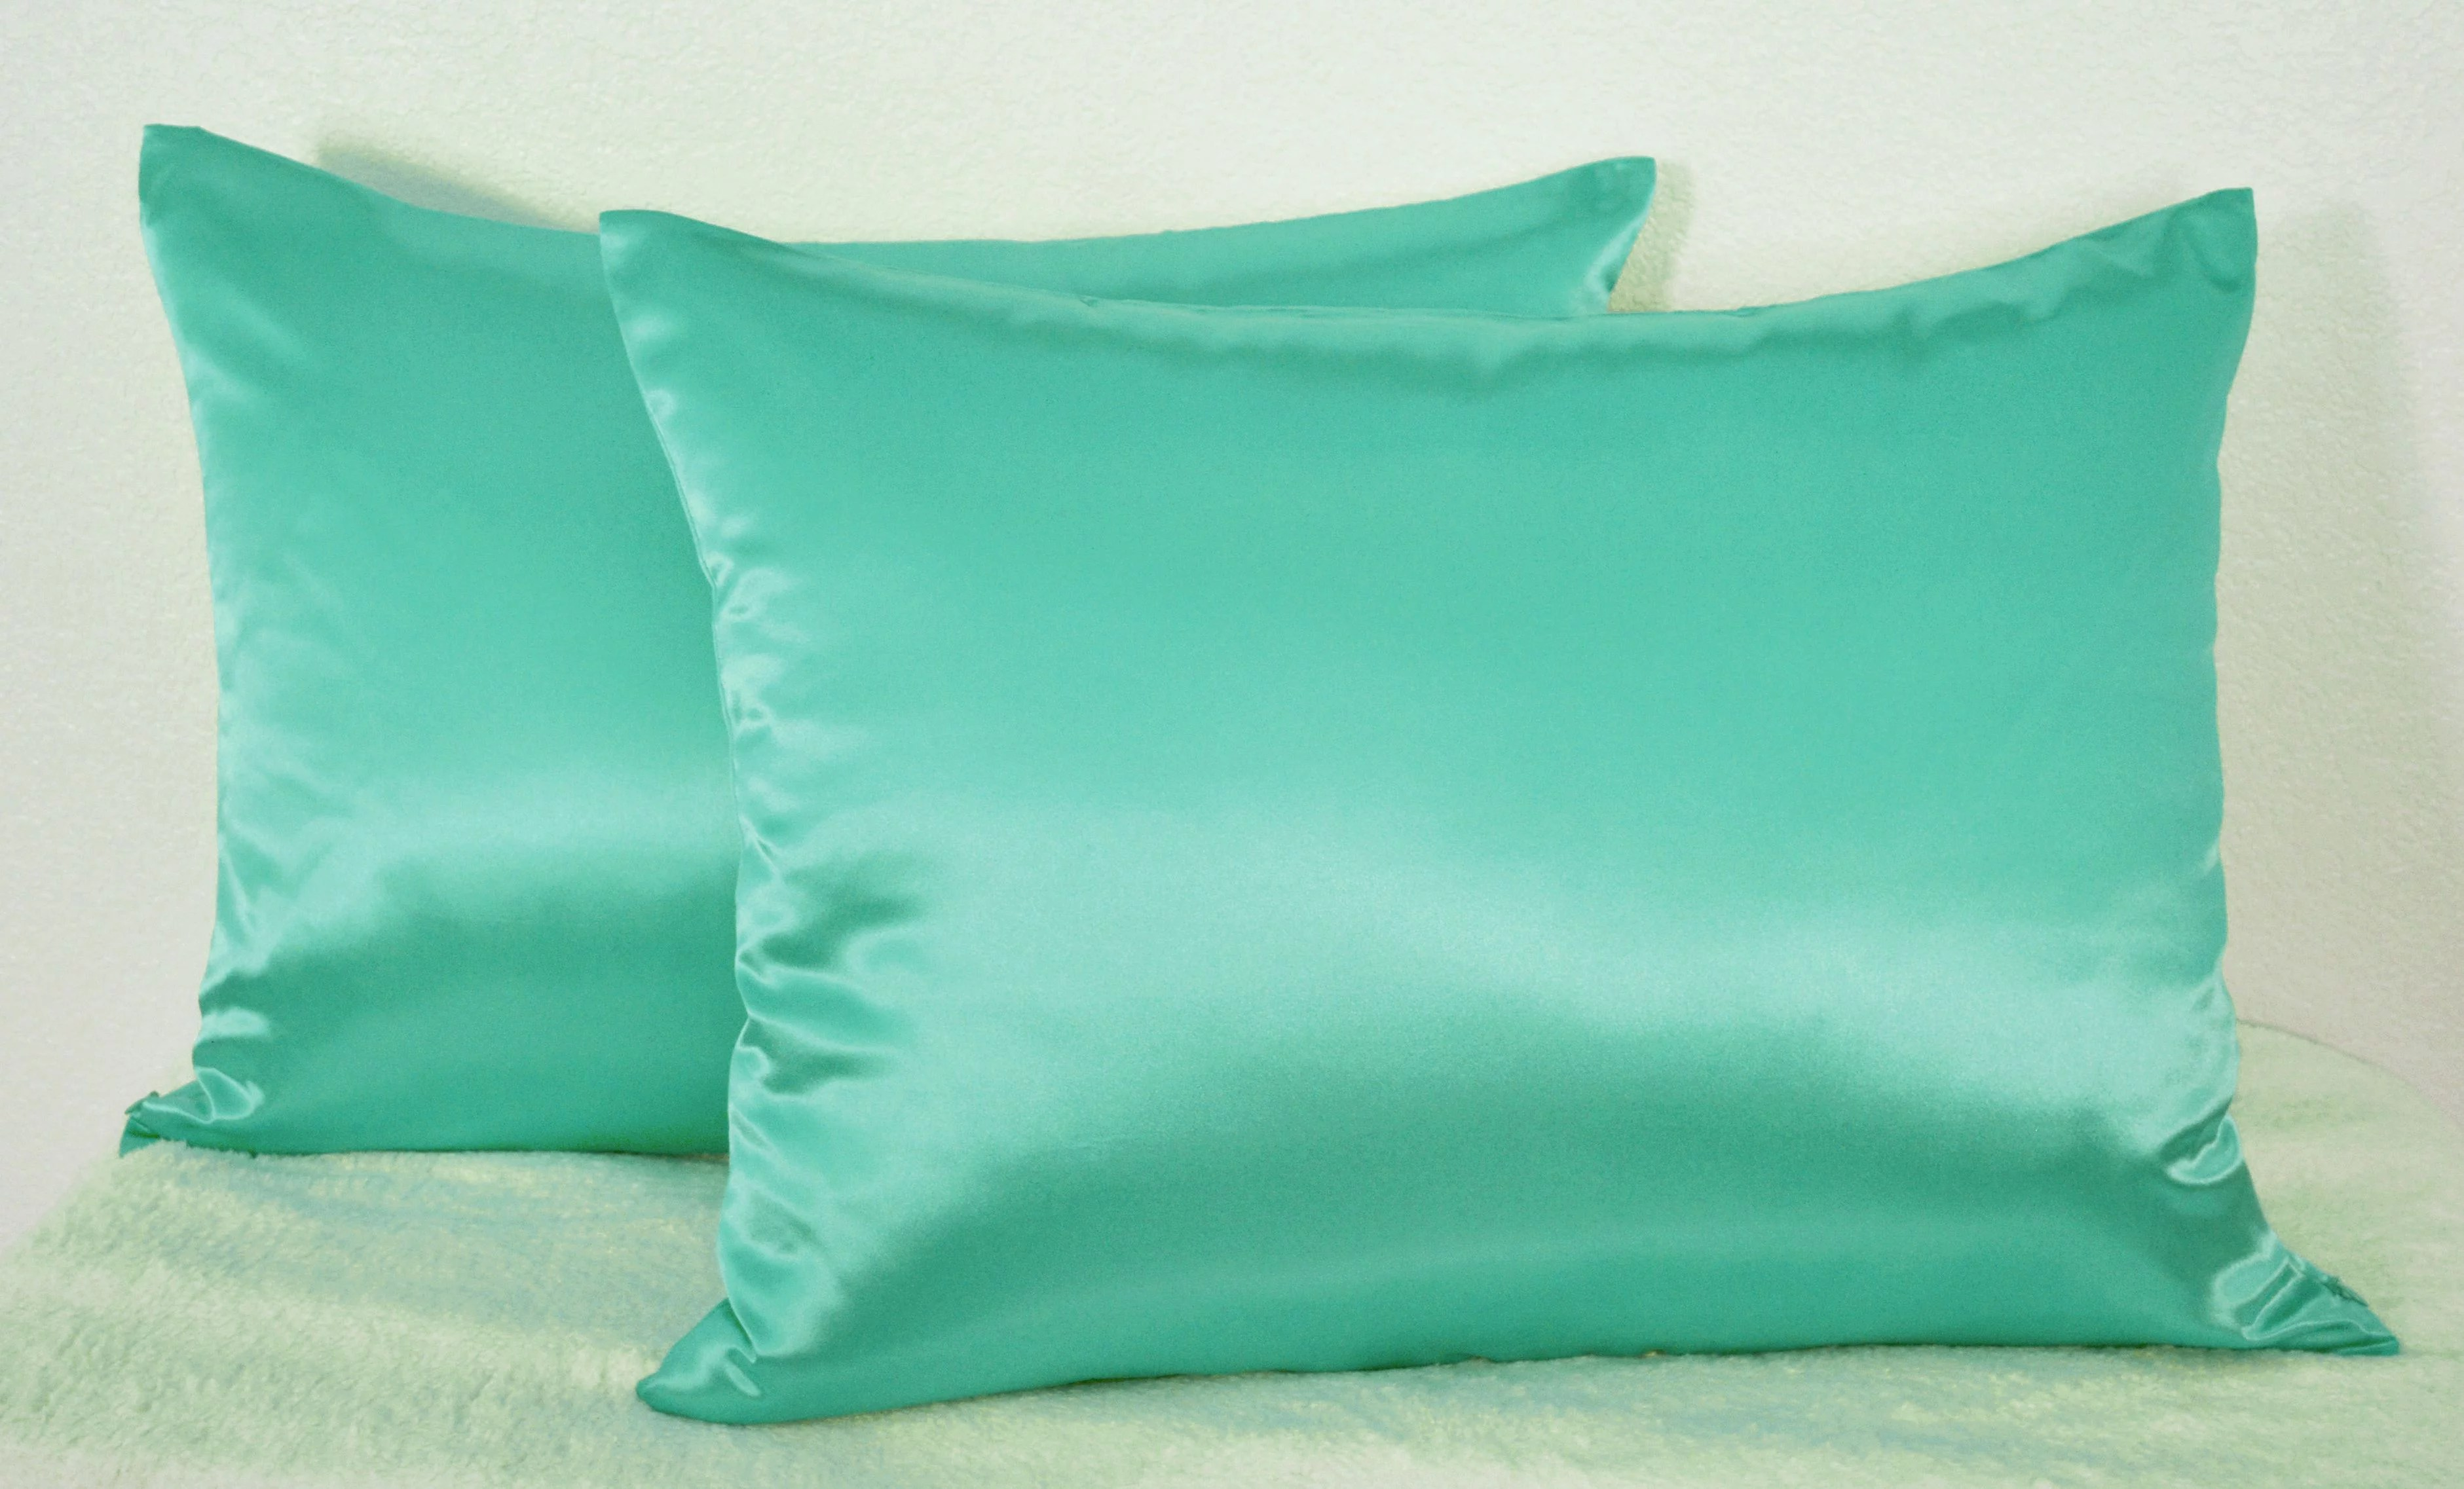 Satin Pillowcases With Zipper Aiking Home 350tc Bridal Satin Pillow Cases Zipper Closure Pack Of 2 Size 20 X26 Standard Teal